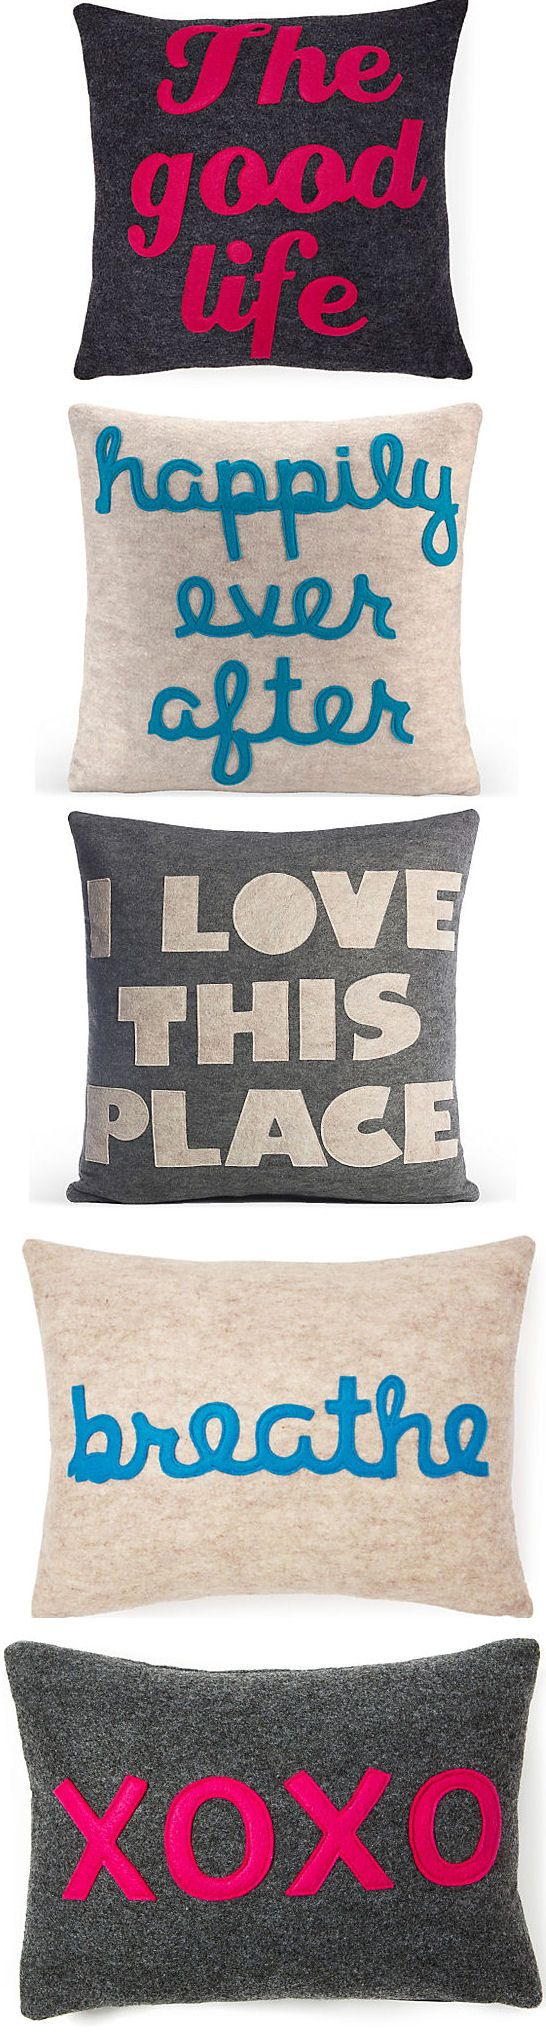 Loving these Statement Pillows <3